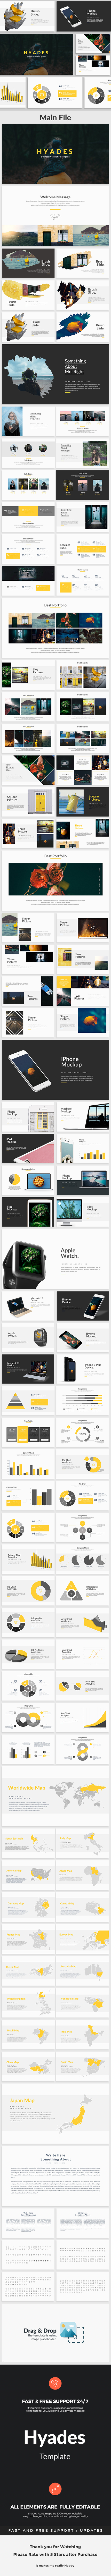 Hyades Creative Powerpoint Template  Powerpoint Ppt Investor